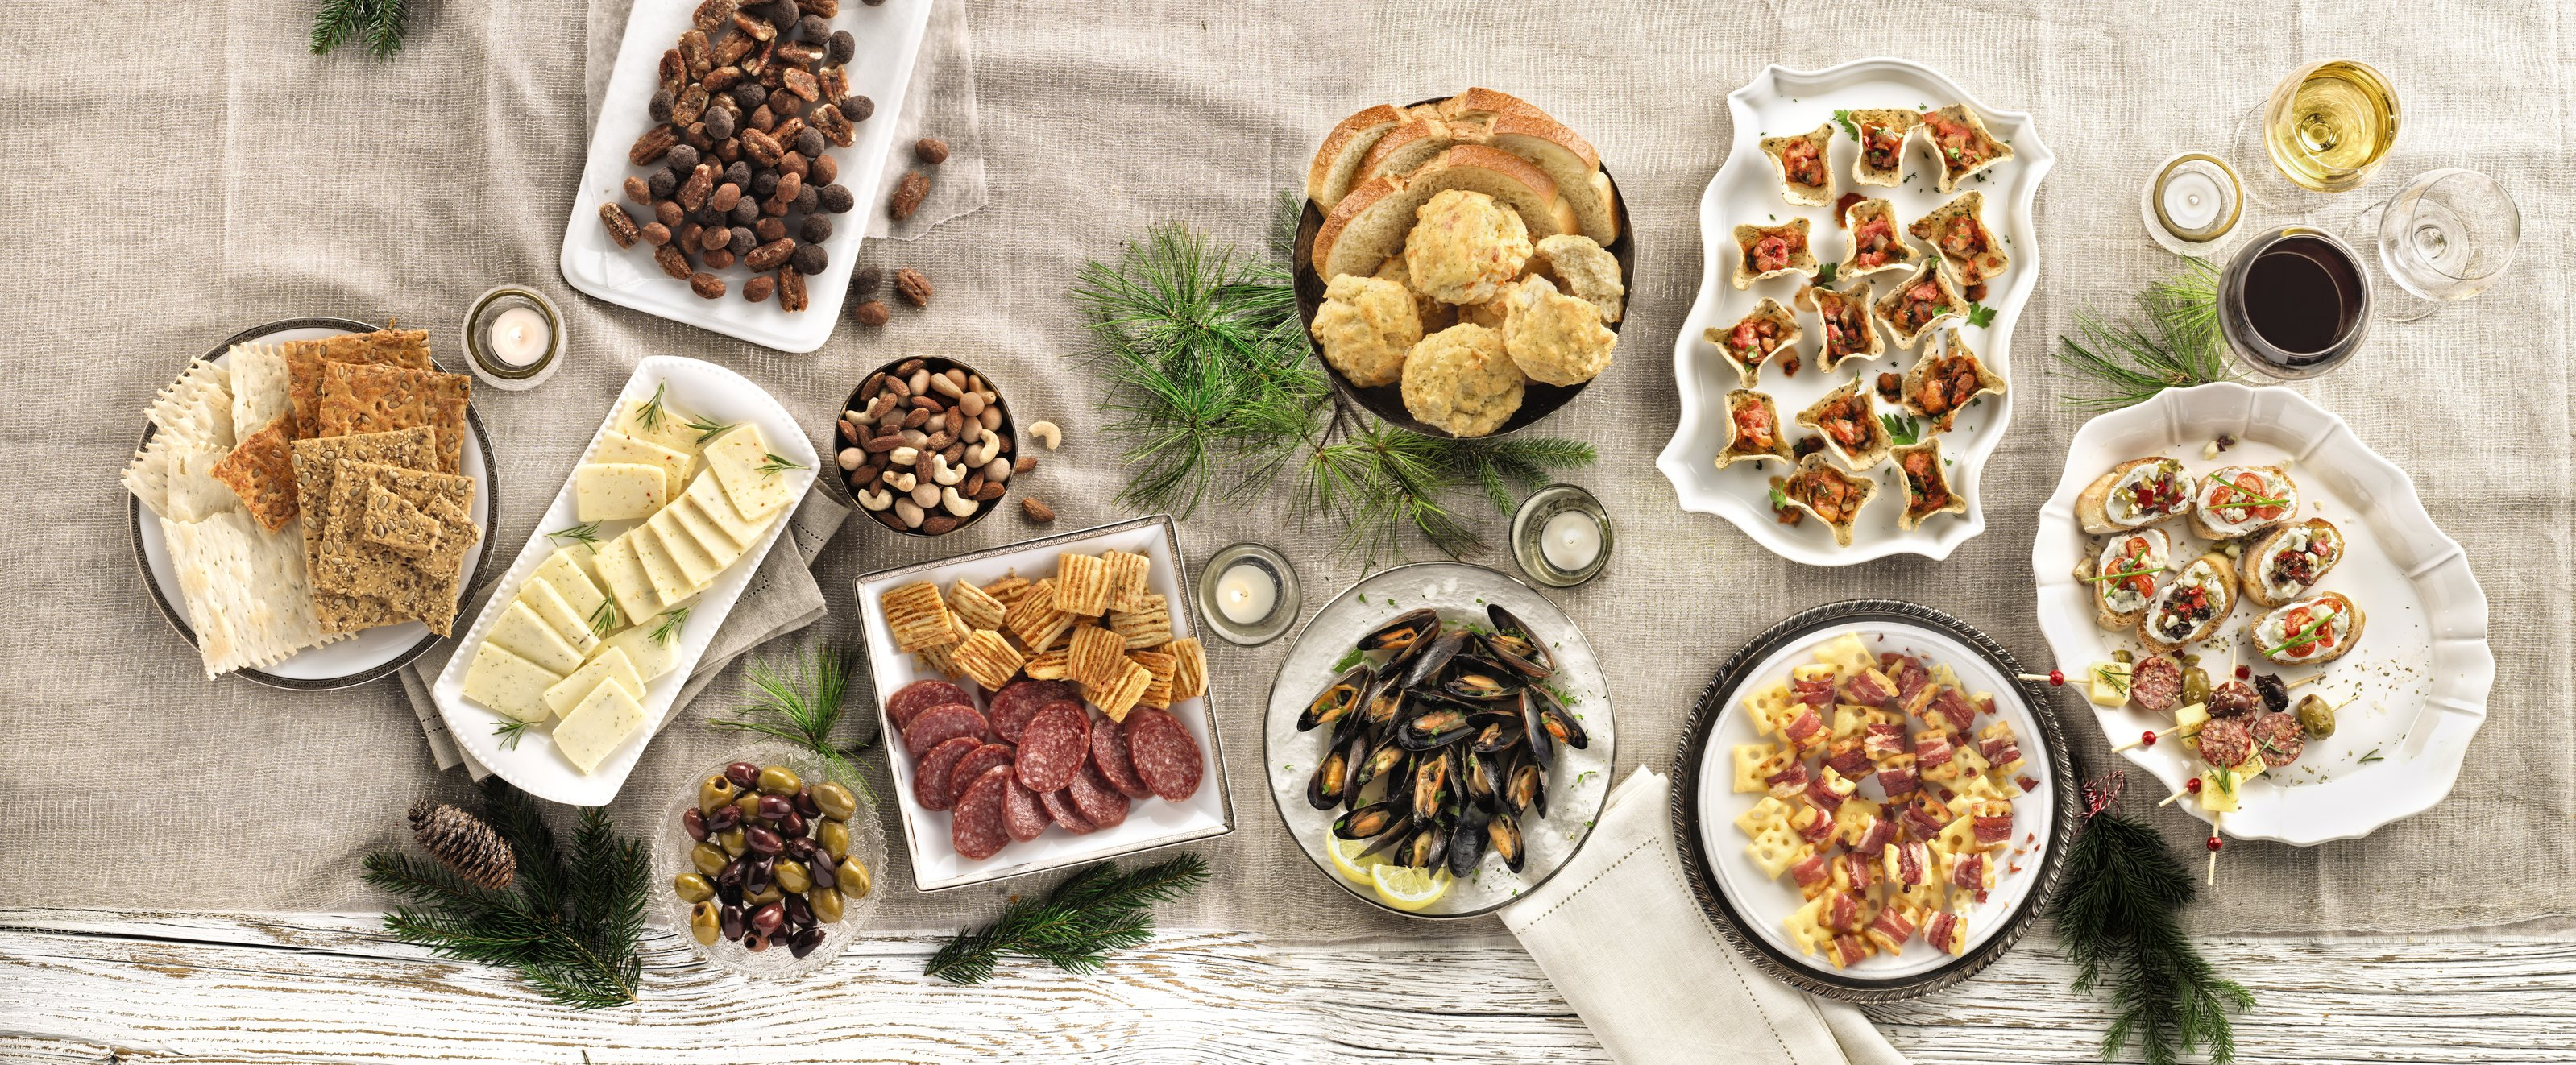 Various appetizers on a decorated table.